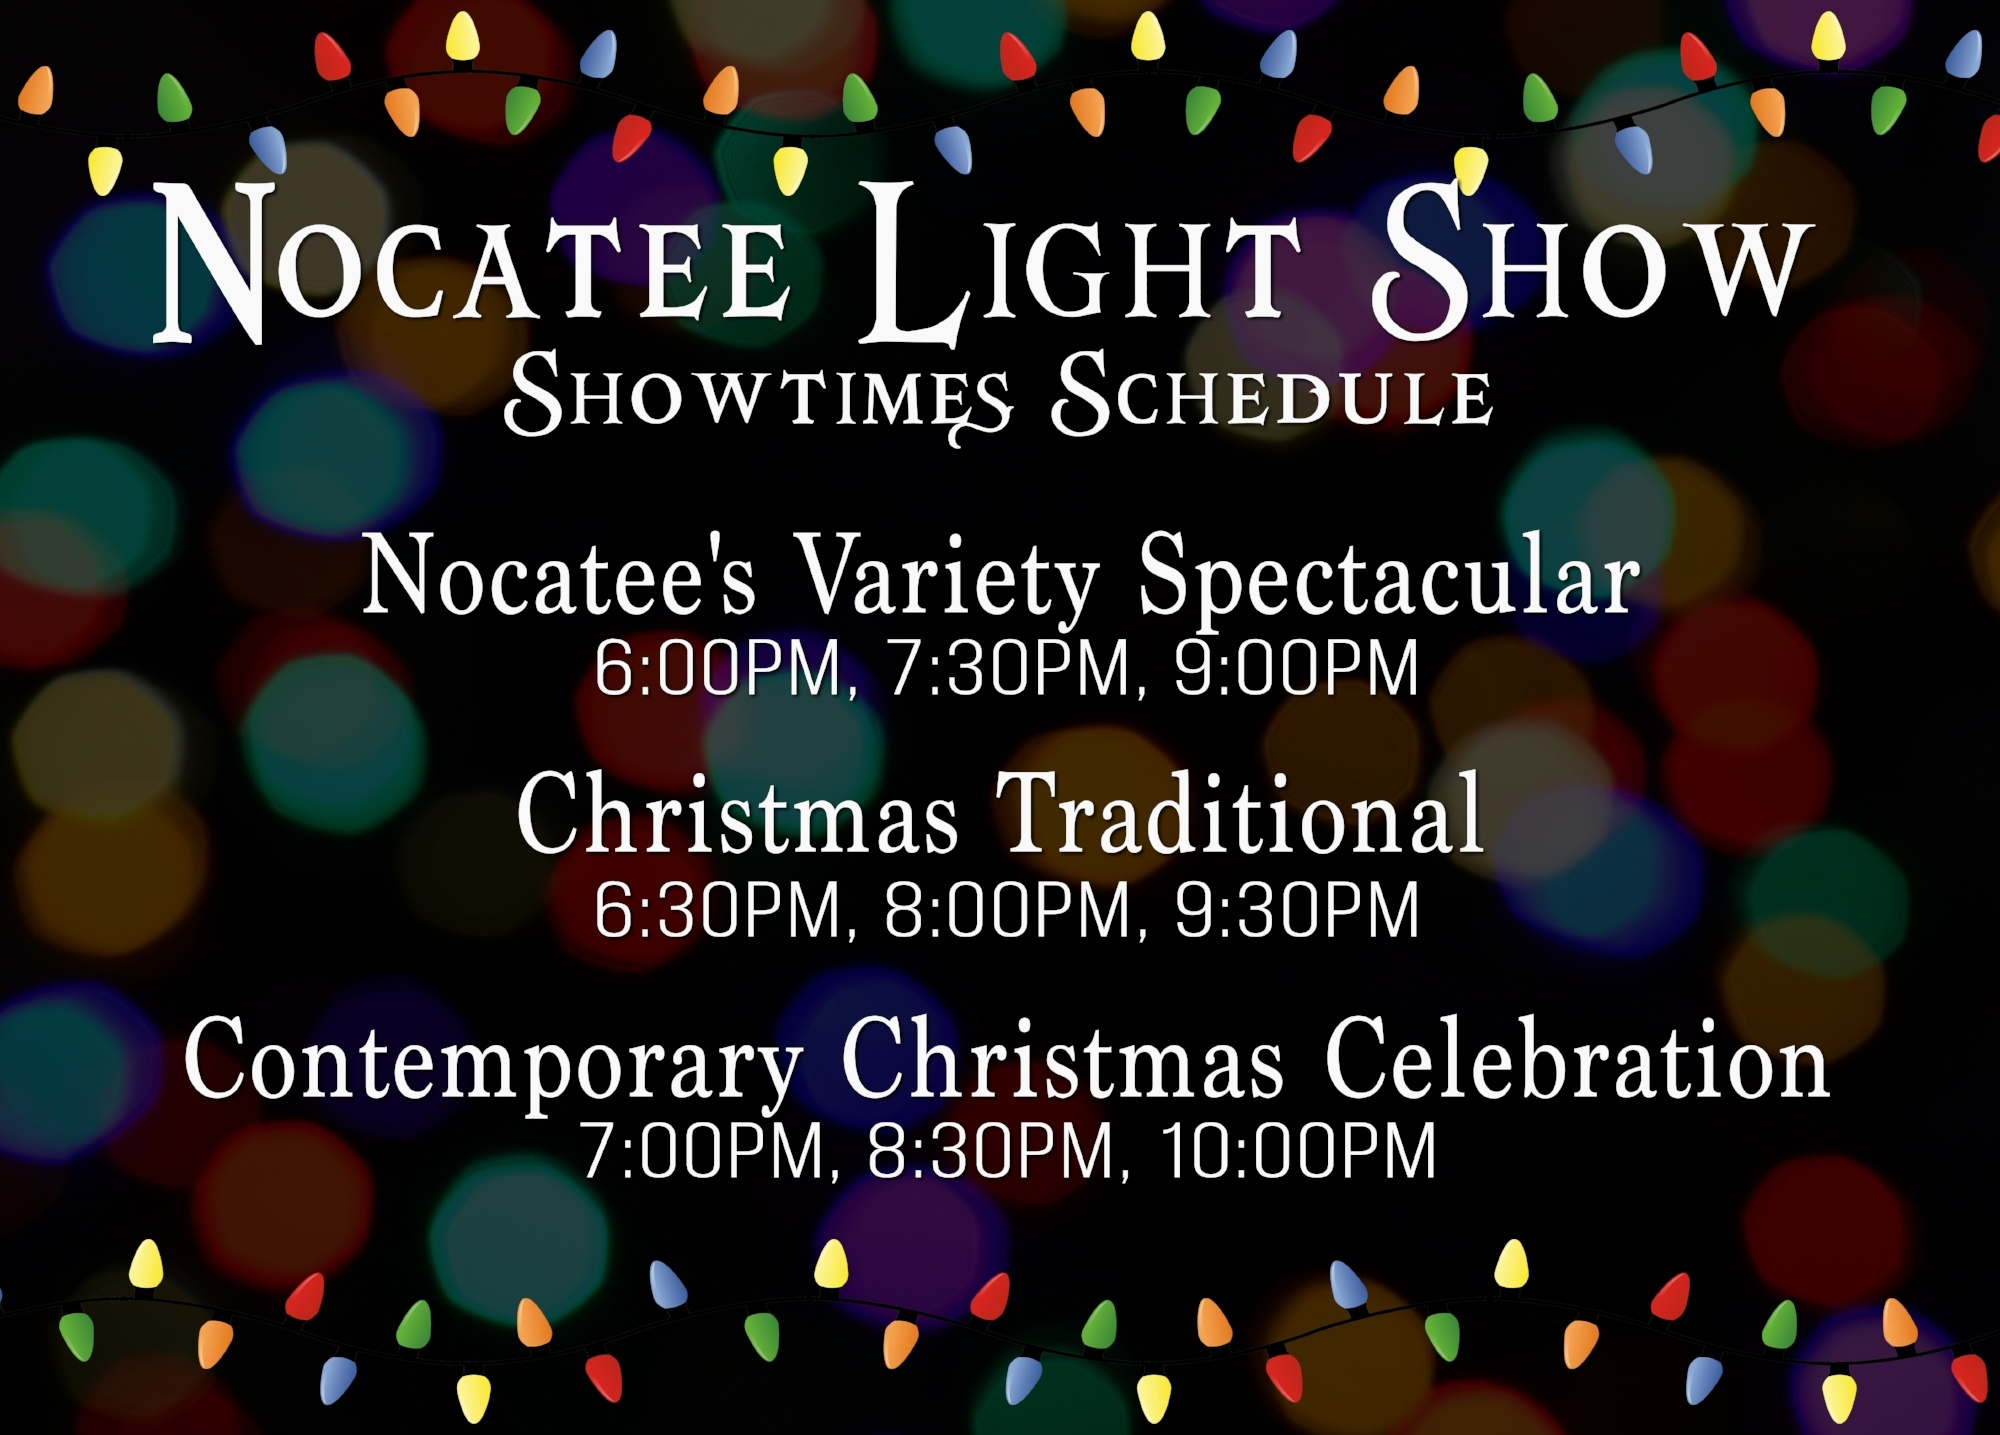 Nocatee Light Show 2017 at Splash Waterpark